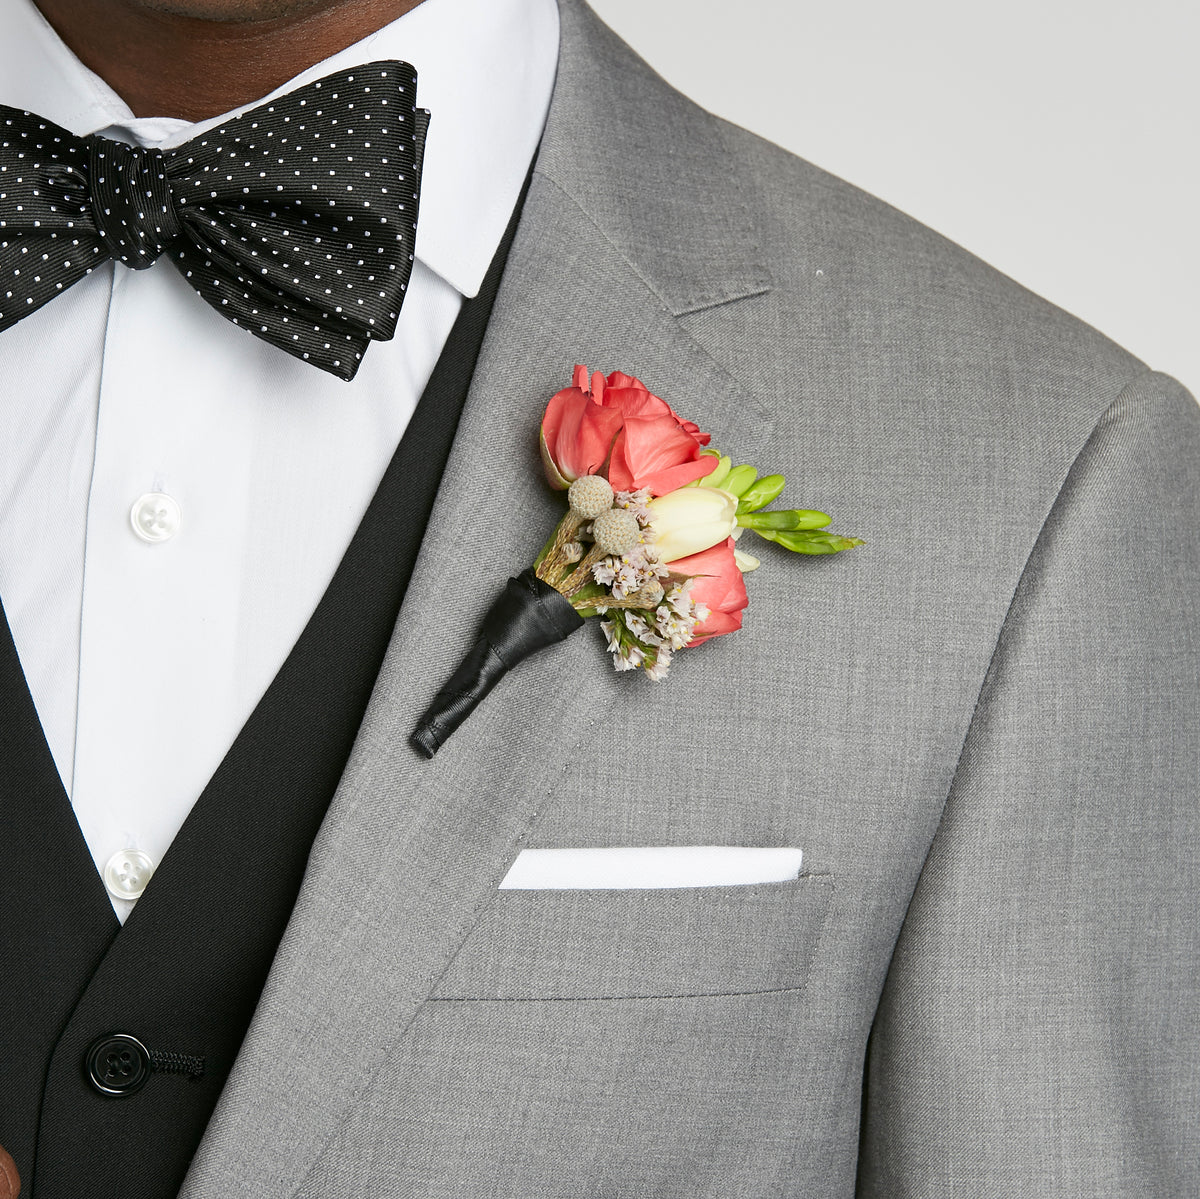 How To Put On Your Boutonniere For Prom